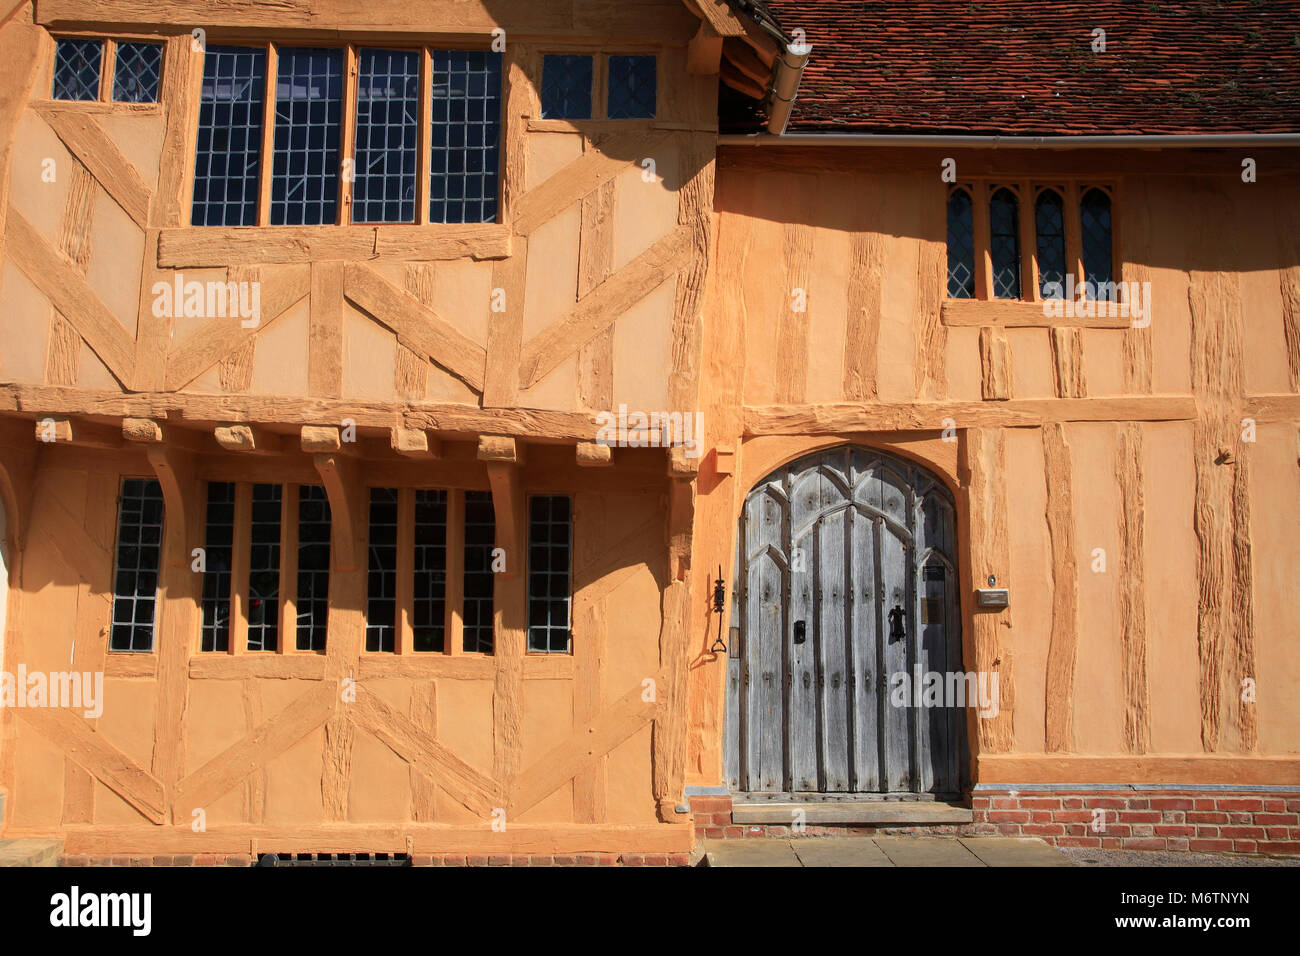 Colorful half timber framed thatched cottages, Lavenham village, Suffolk County, England, UK - Stock Image